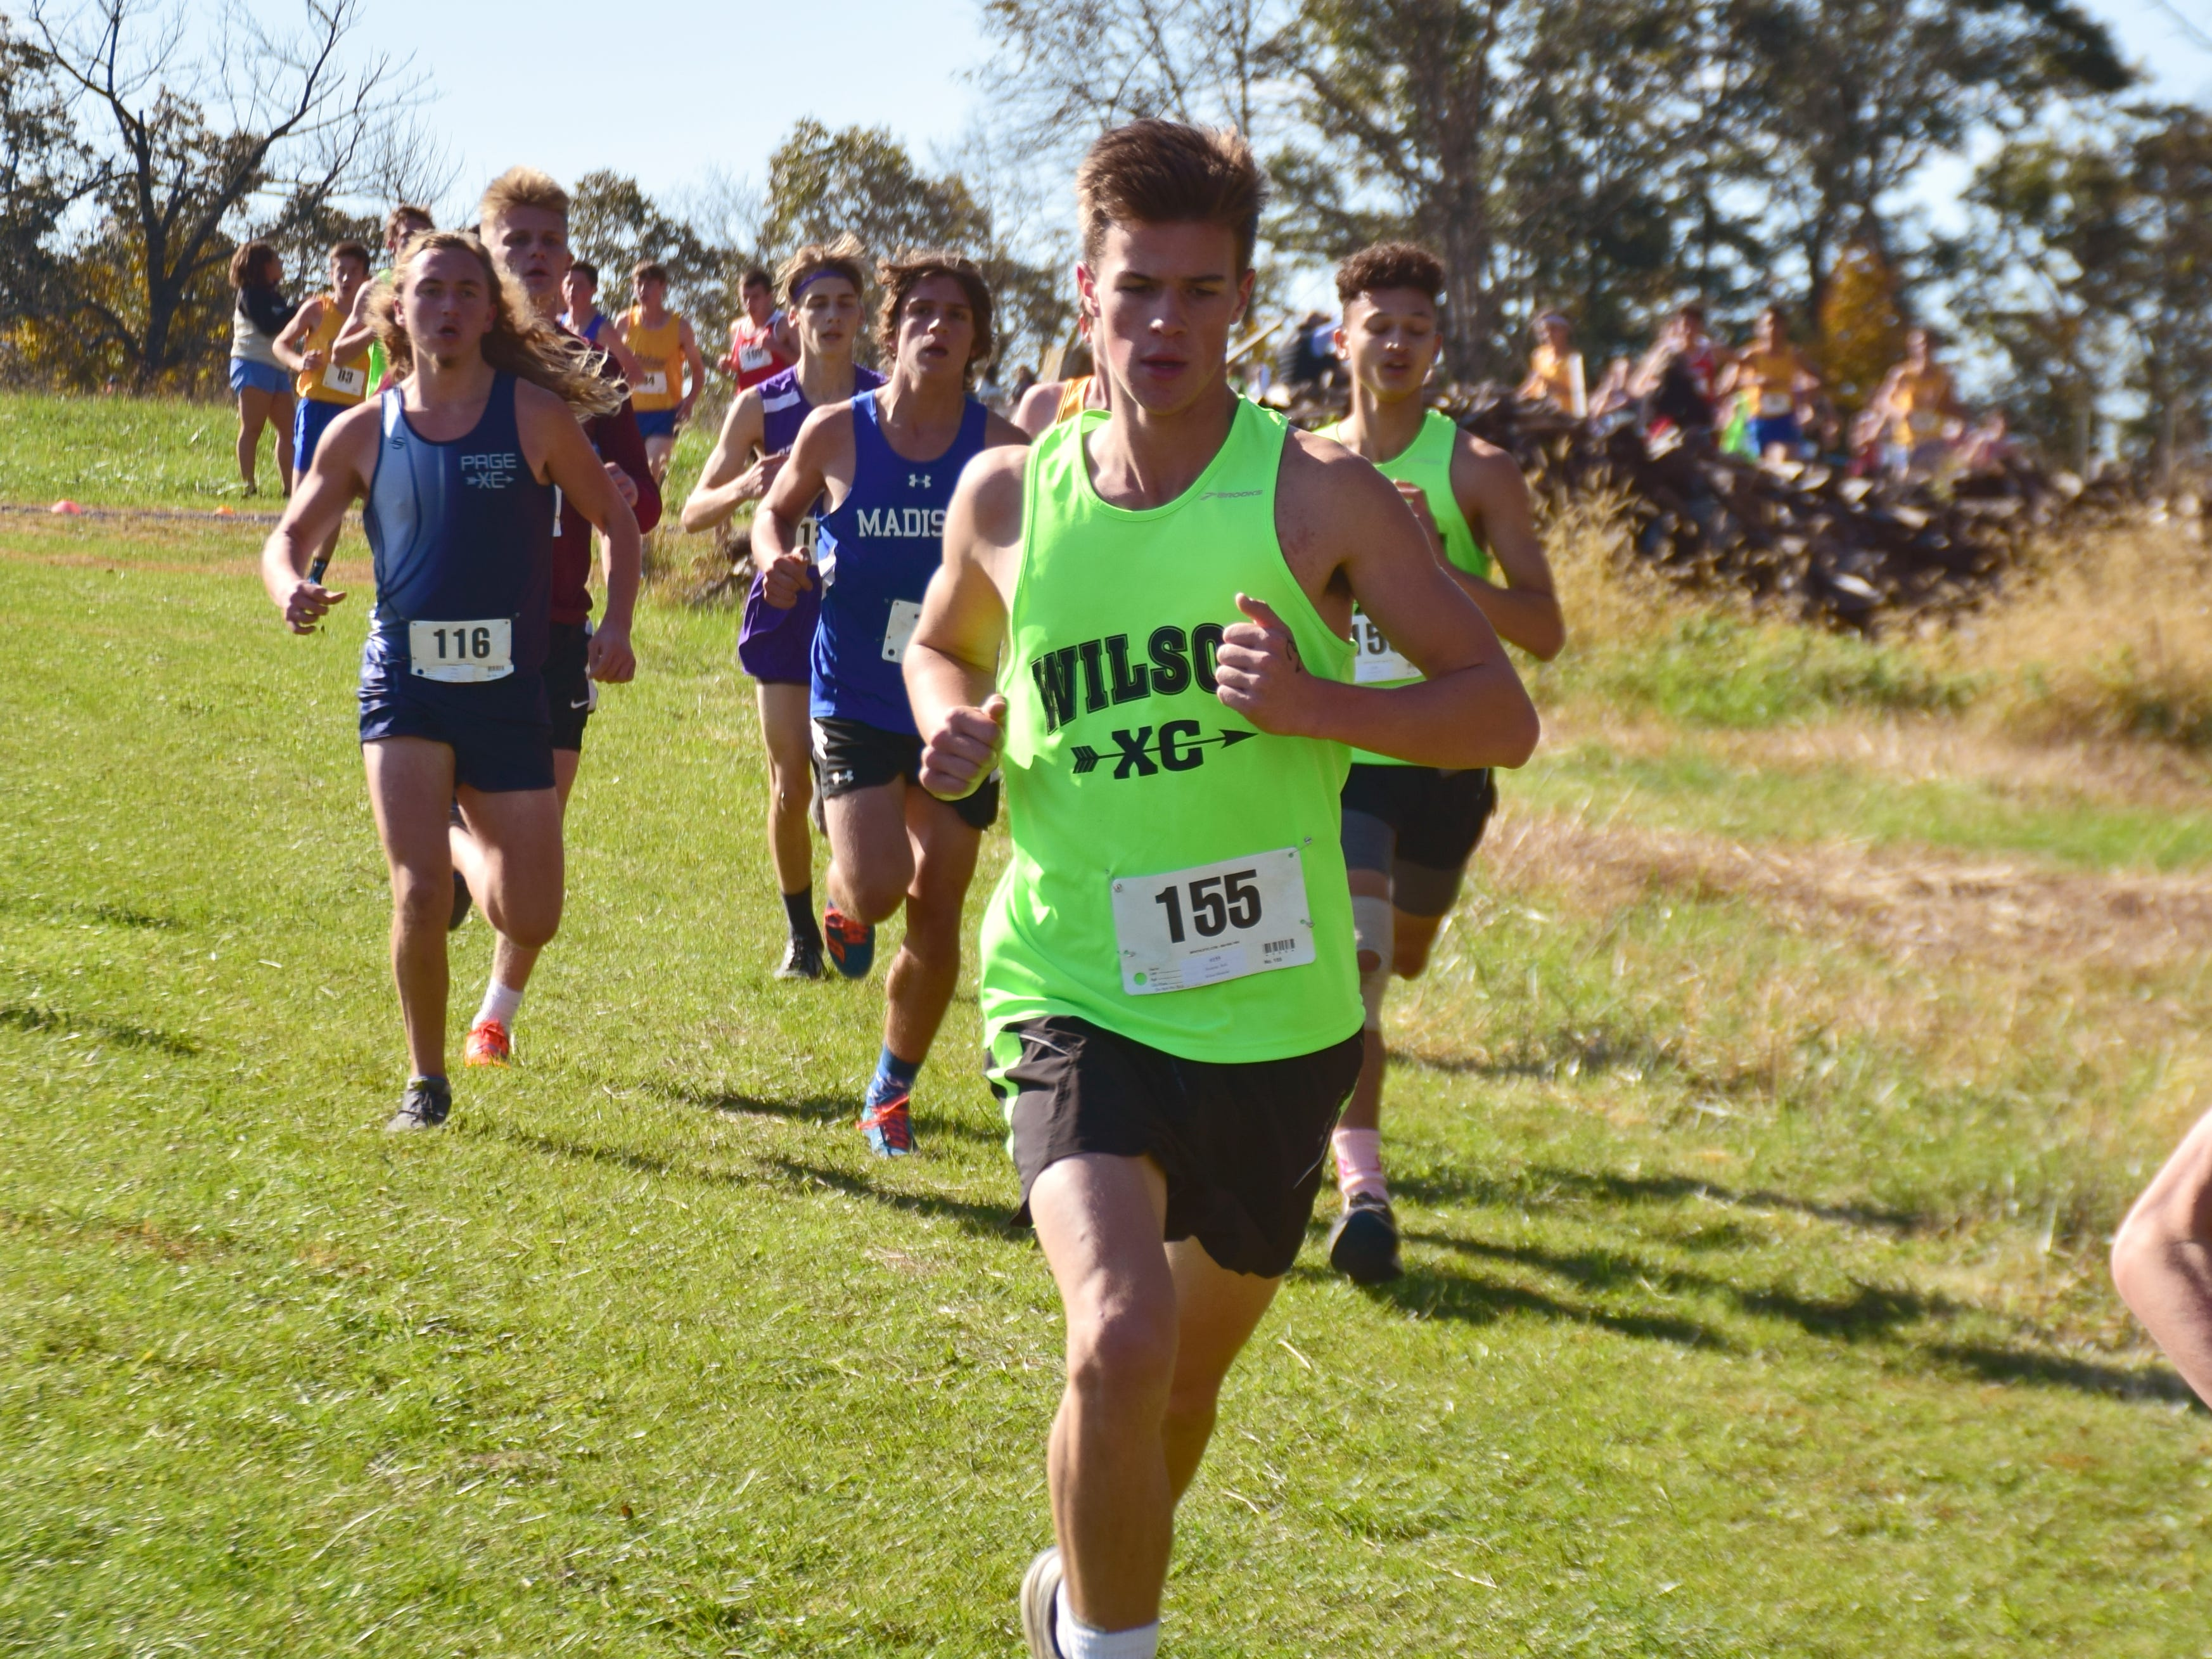 Wilson Memorial's Rafe Shumate competes in the boys race at the VHSL Class 2, Region B Cross Country Championships on Tuesday, Oct. 30, 2018, at New Market Battlefield Park in New Market, Va.